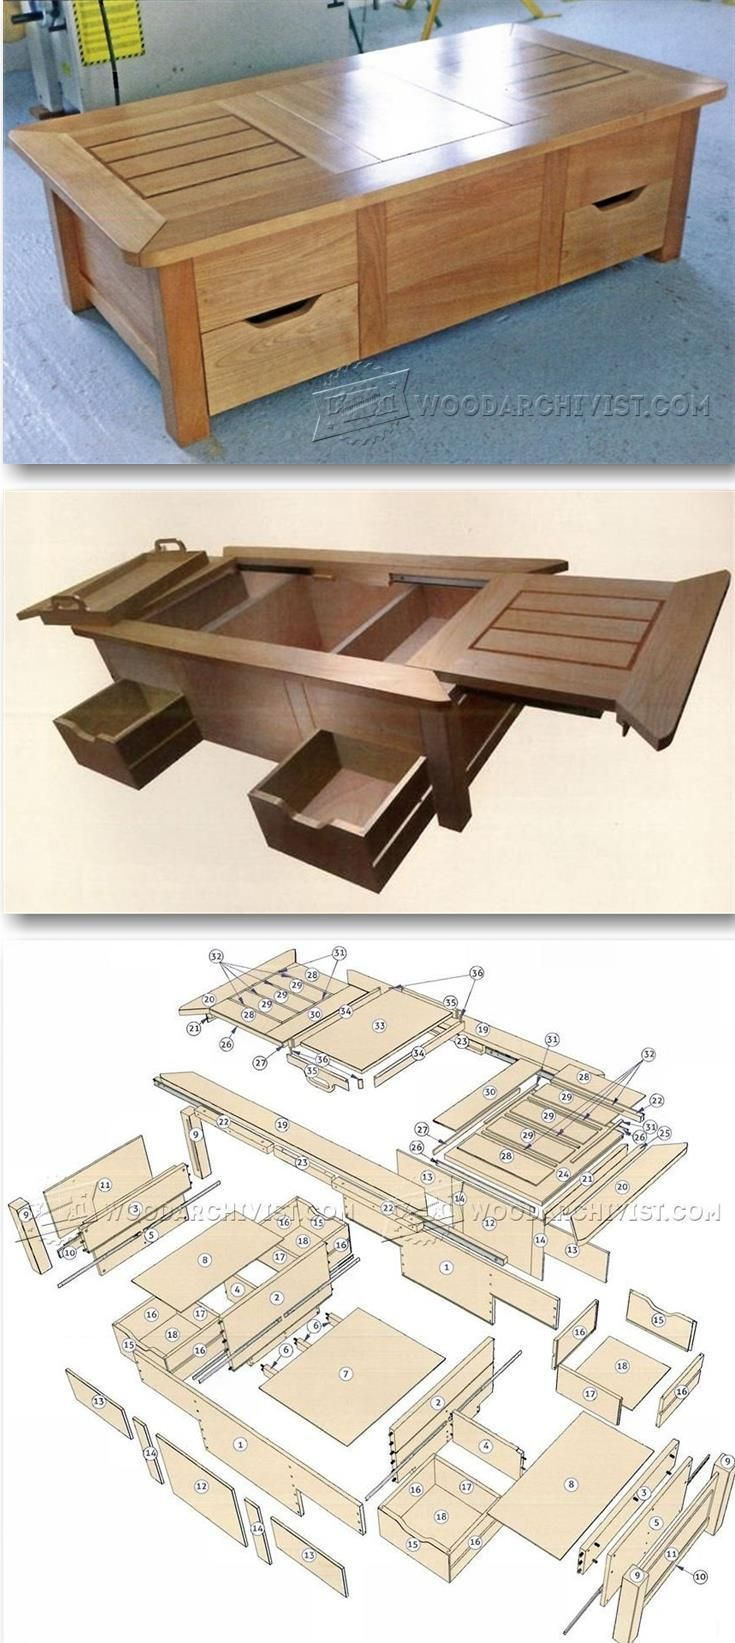 Best ideas about woodworking plans on pinterest